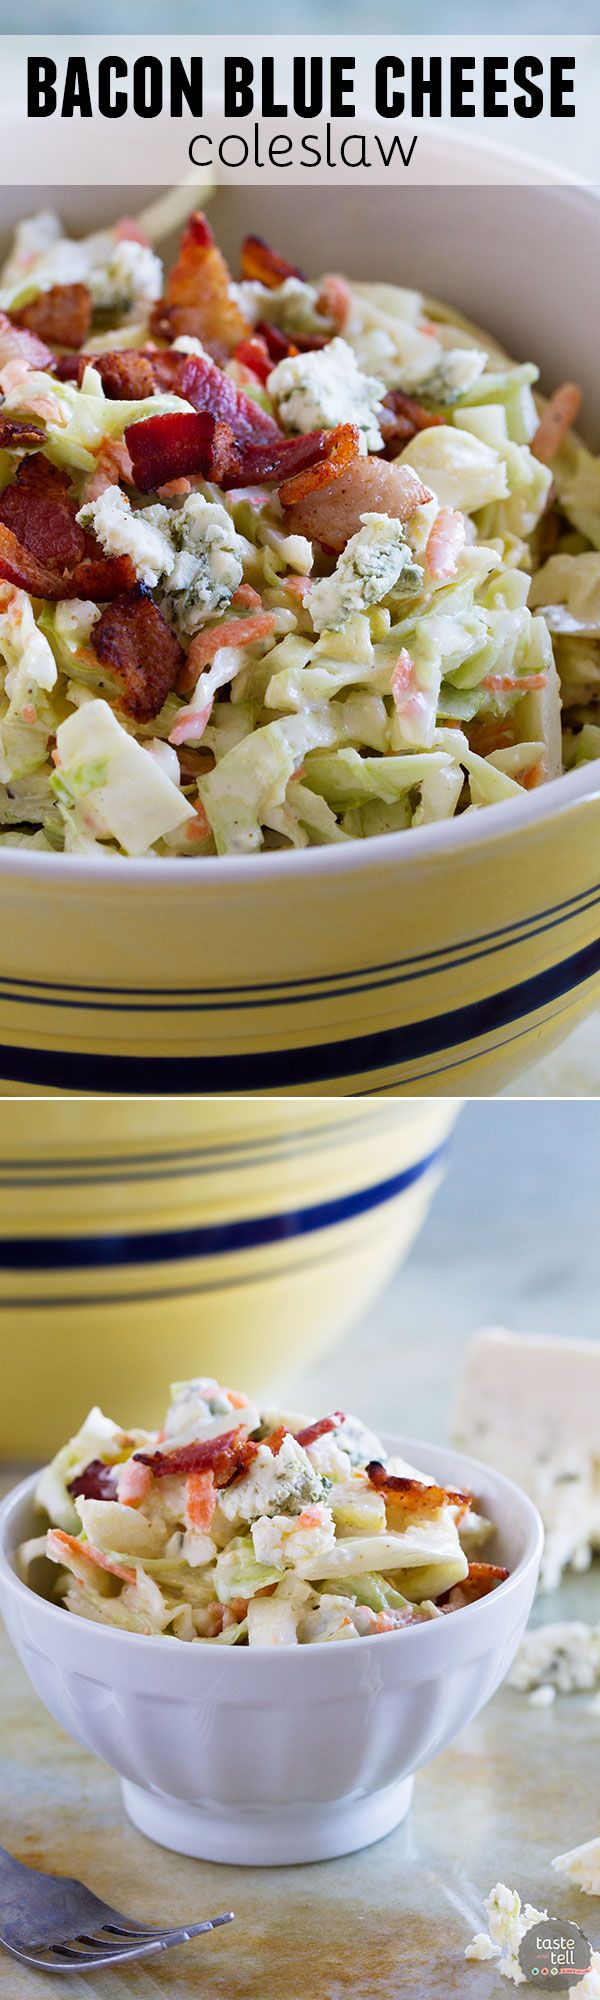 Bacon Blue Cheese Coleslaw proves that!! Crunchy cabbage, salty bacon ...